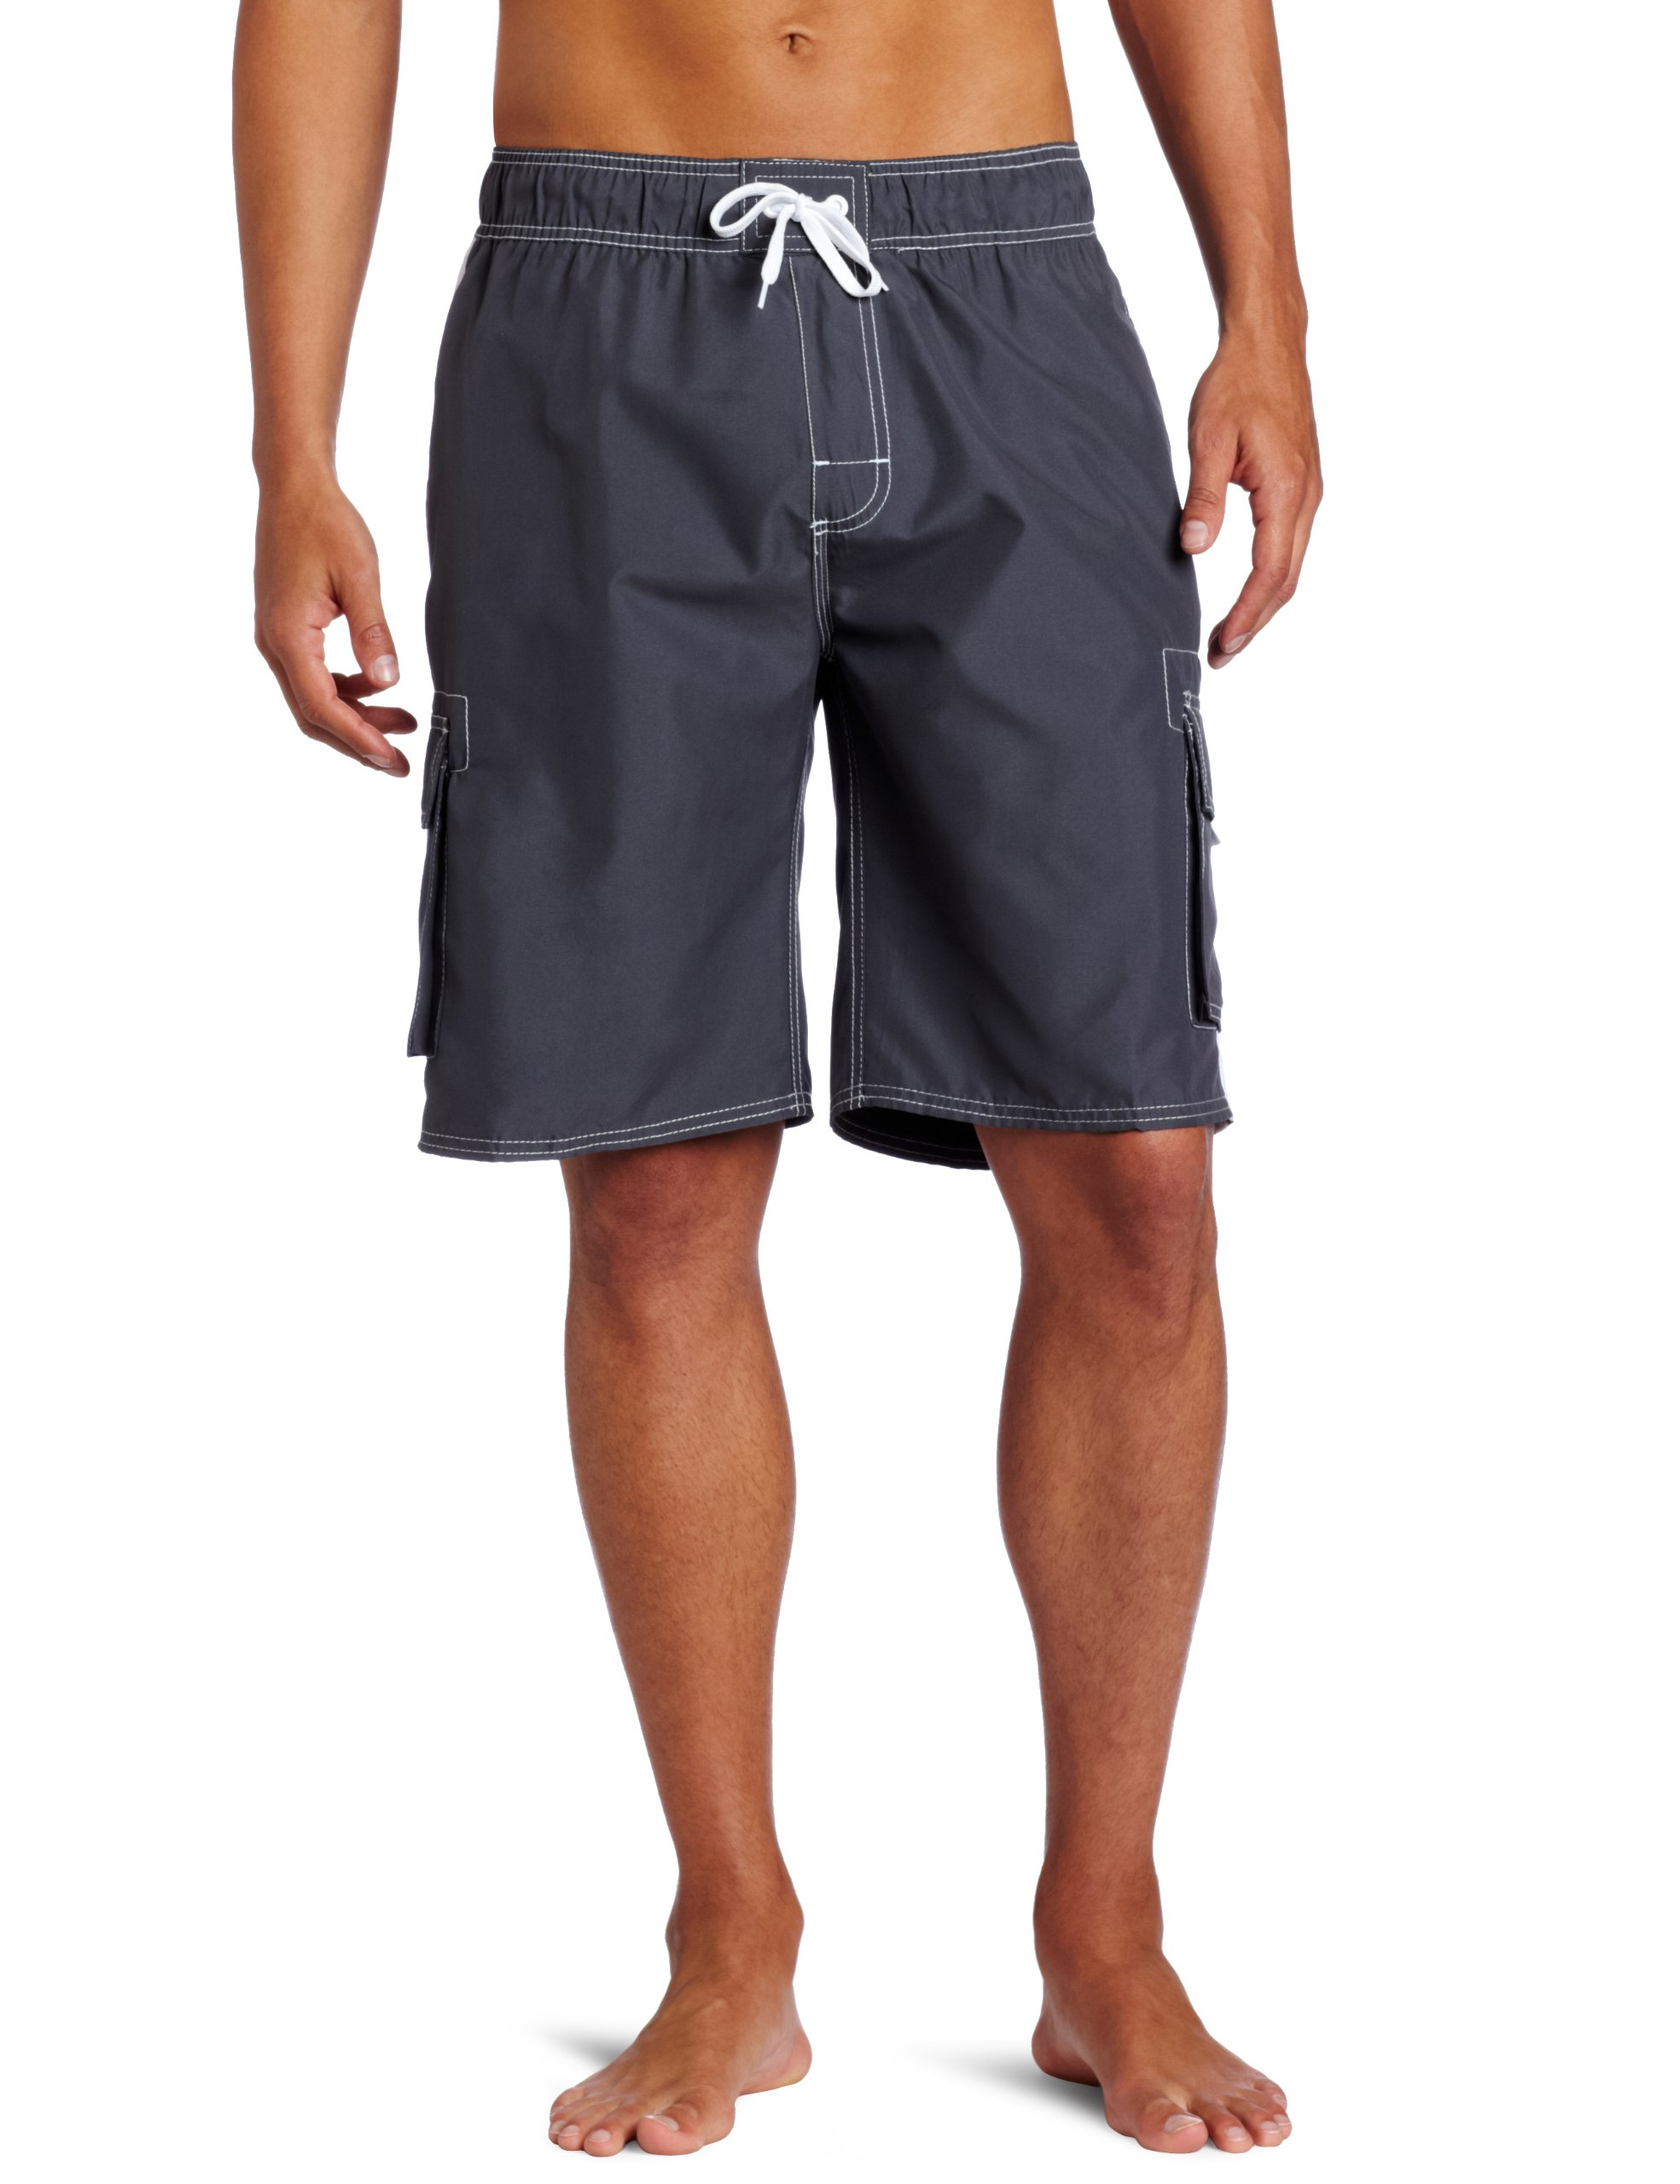 Kanu Surf Men's Barracuda Trunk, Charcoal, X-Large by Kanu Surf